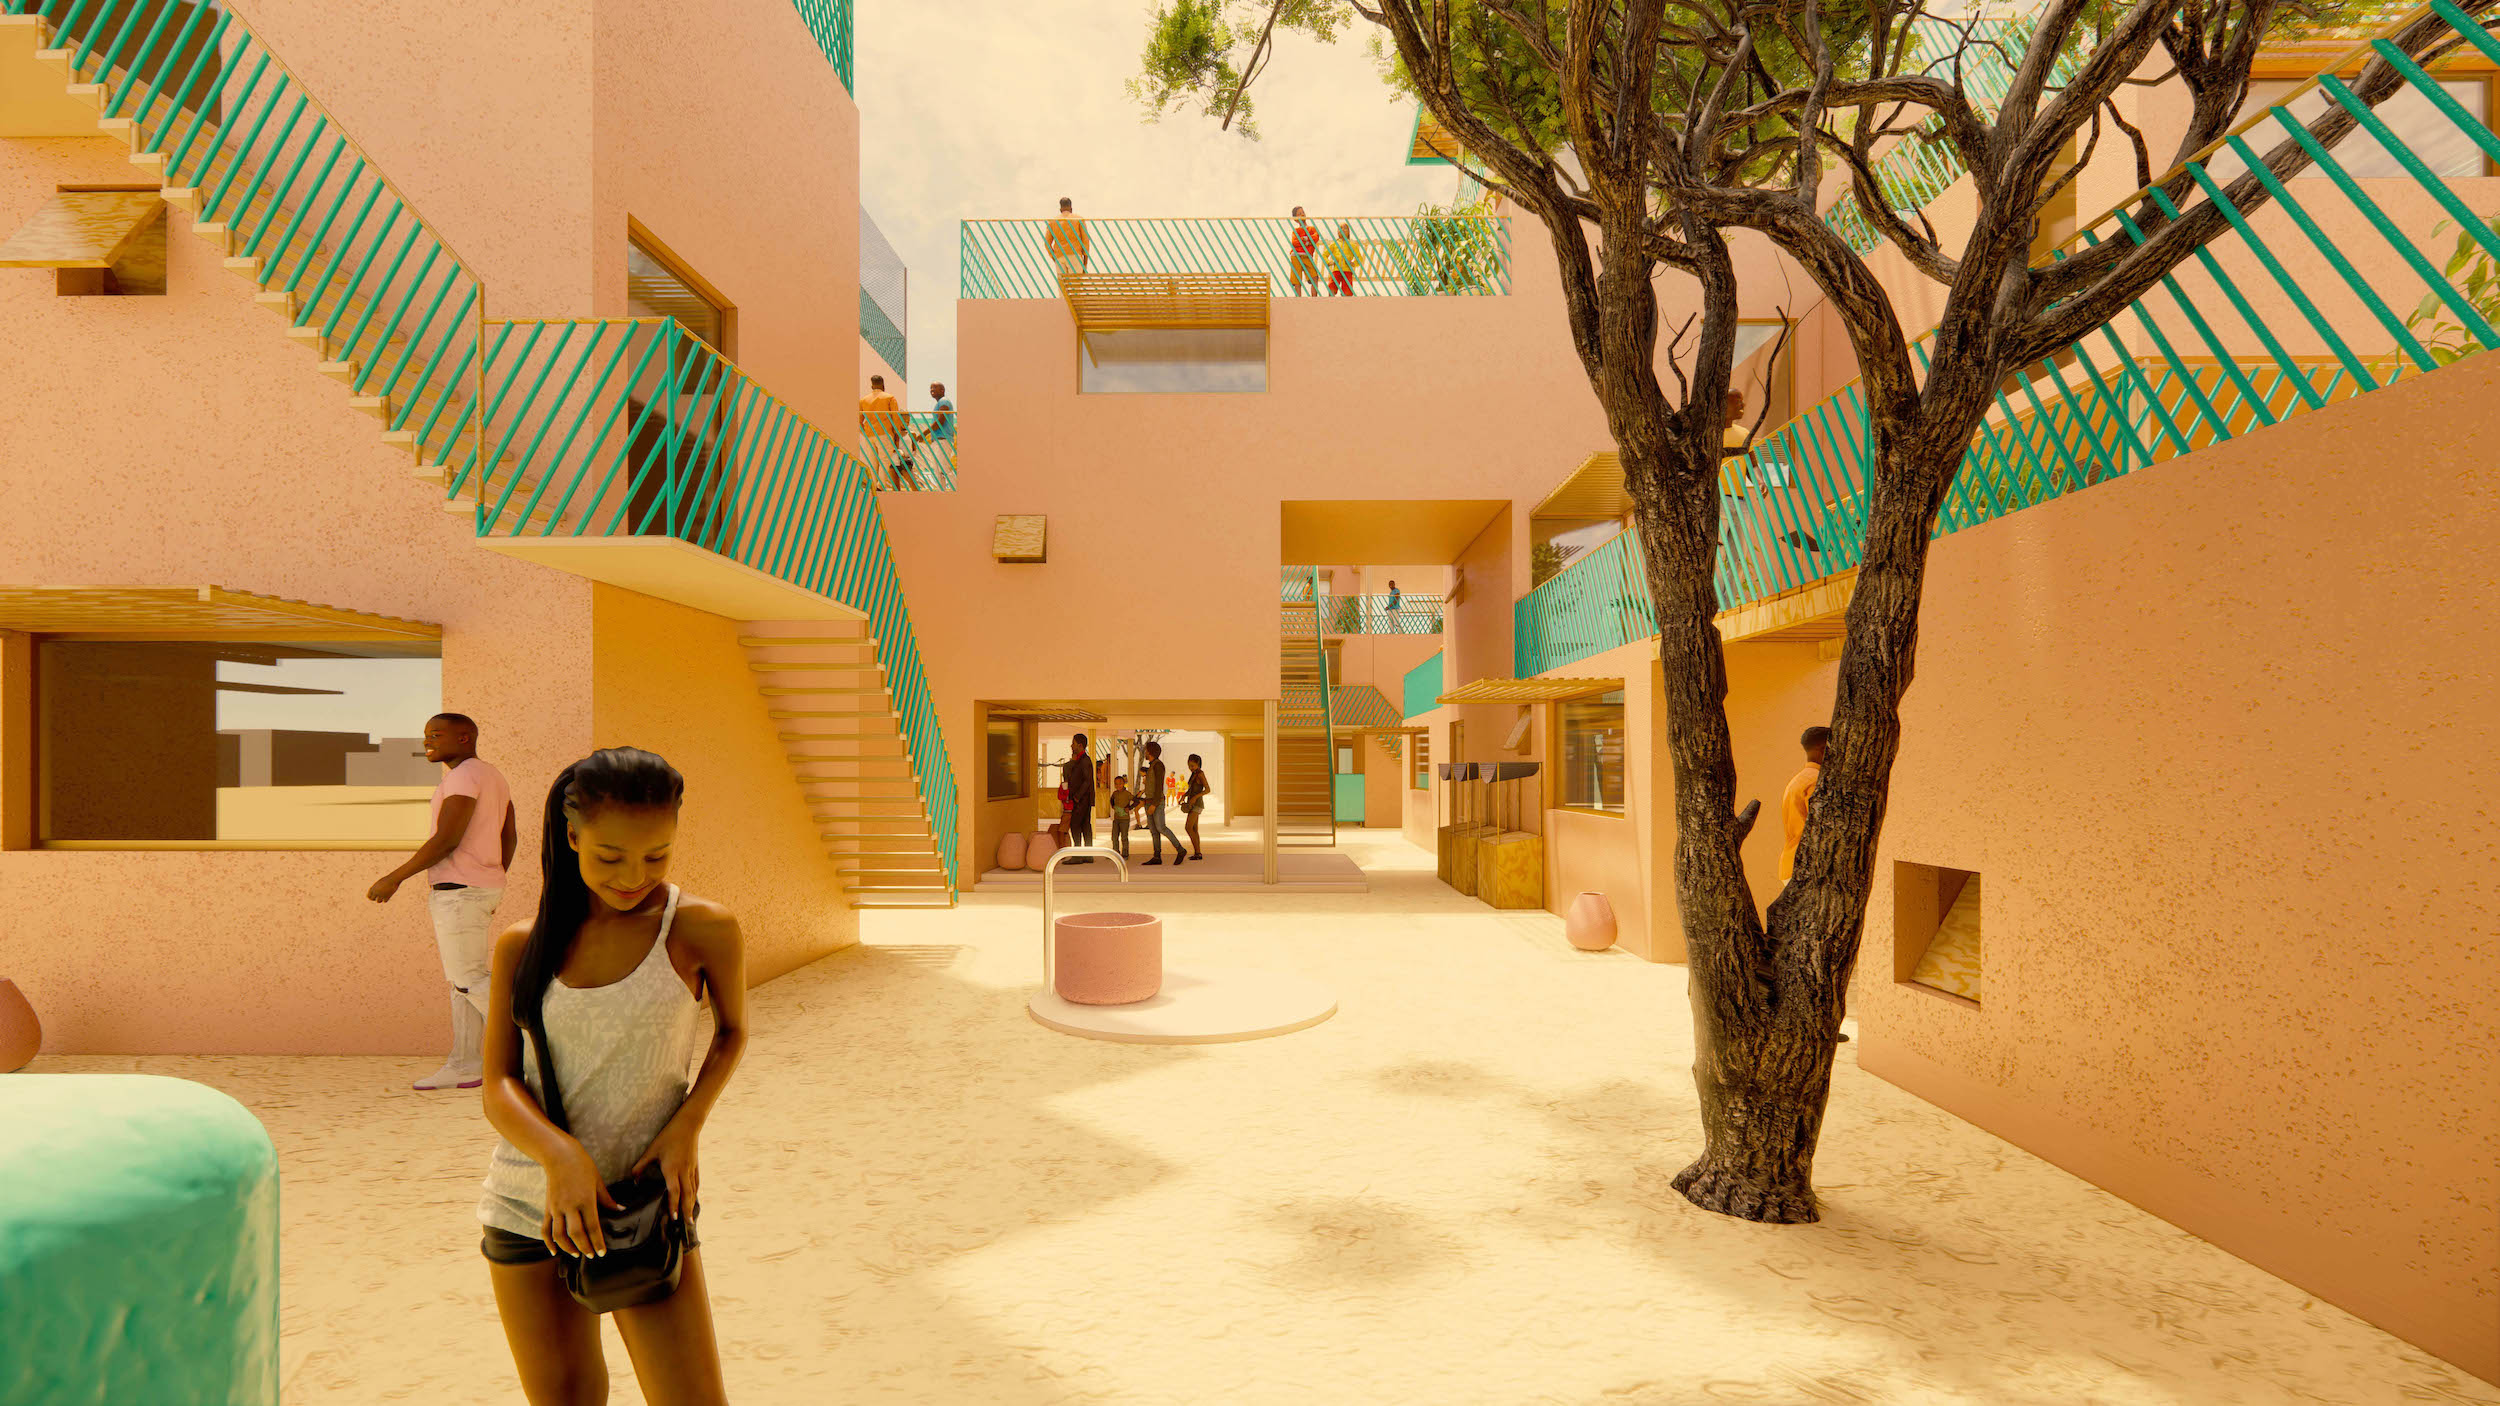 illustration of an african housing complex built from recycled plastic